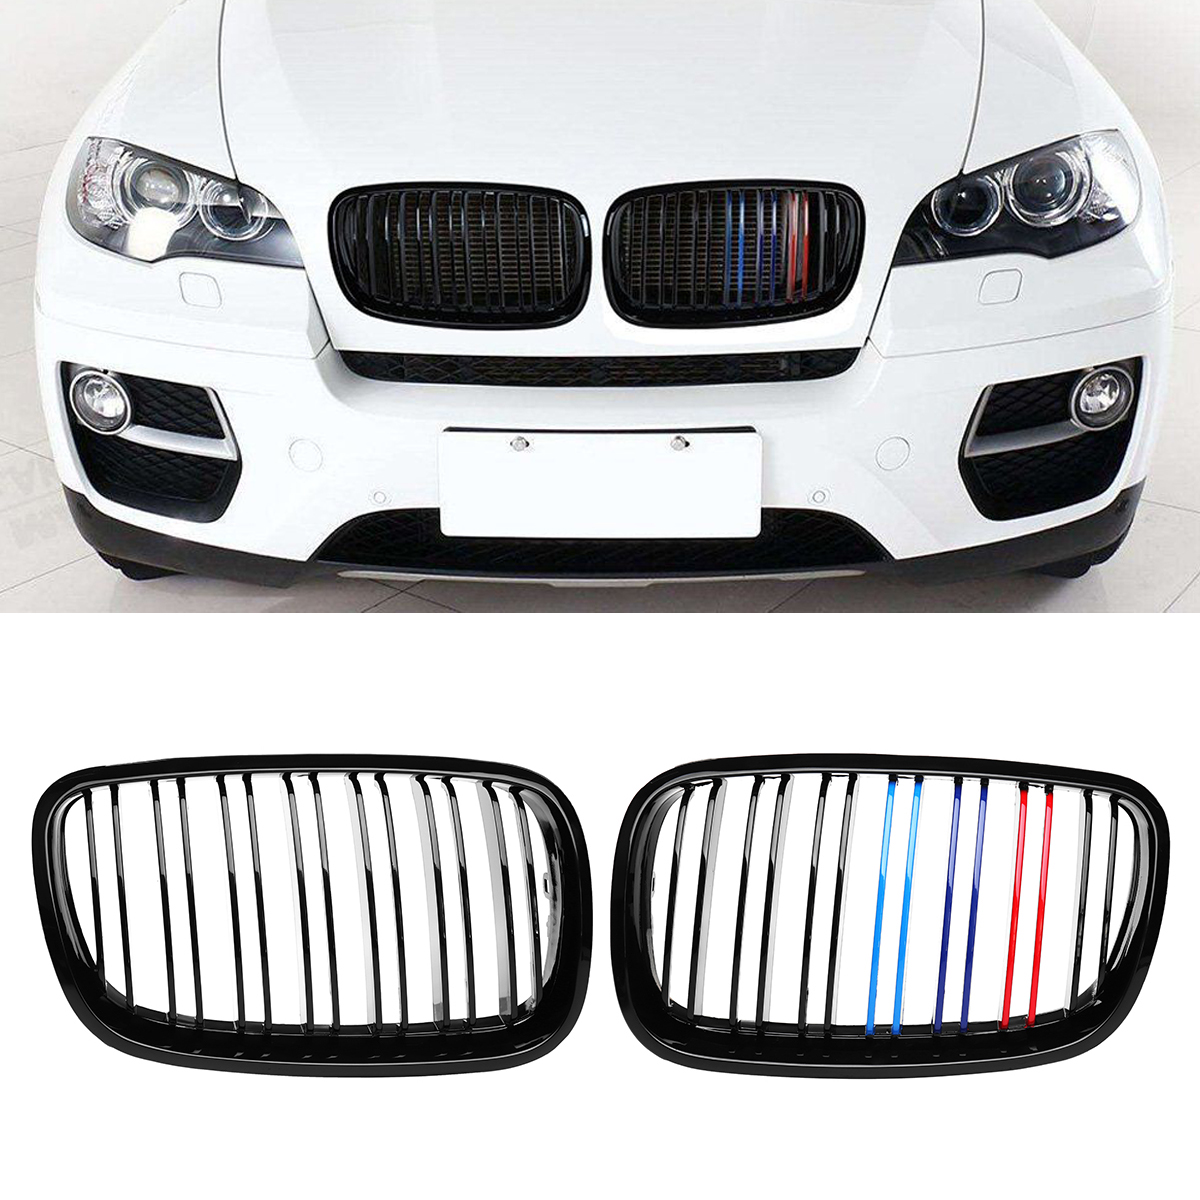 2piece Car Bumper Hood ABS Glossy Black M Color Front Grille Grill Double Slat Kidney for BMW X5 X6 E70 E71 2007 2013